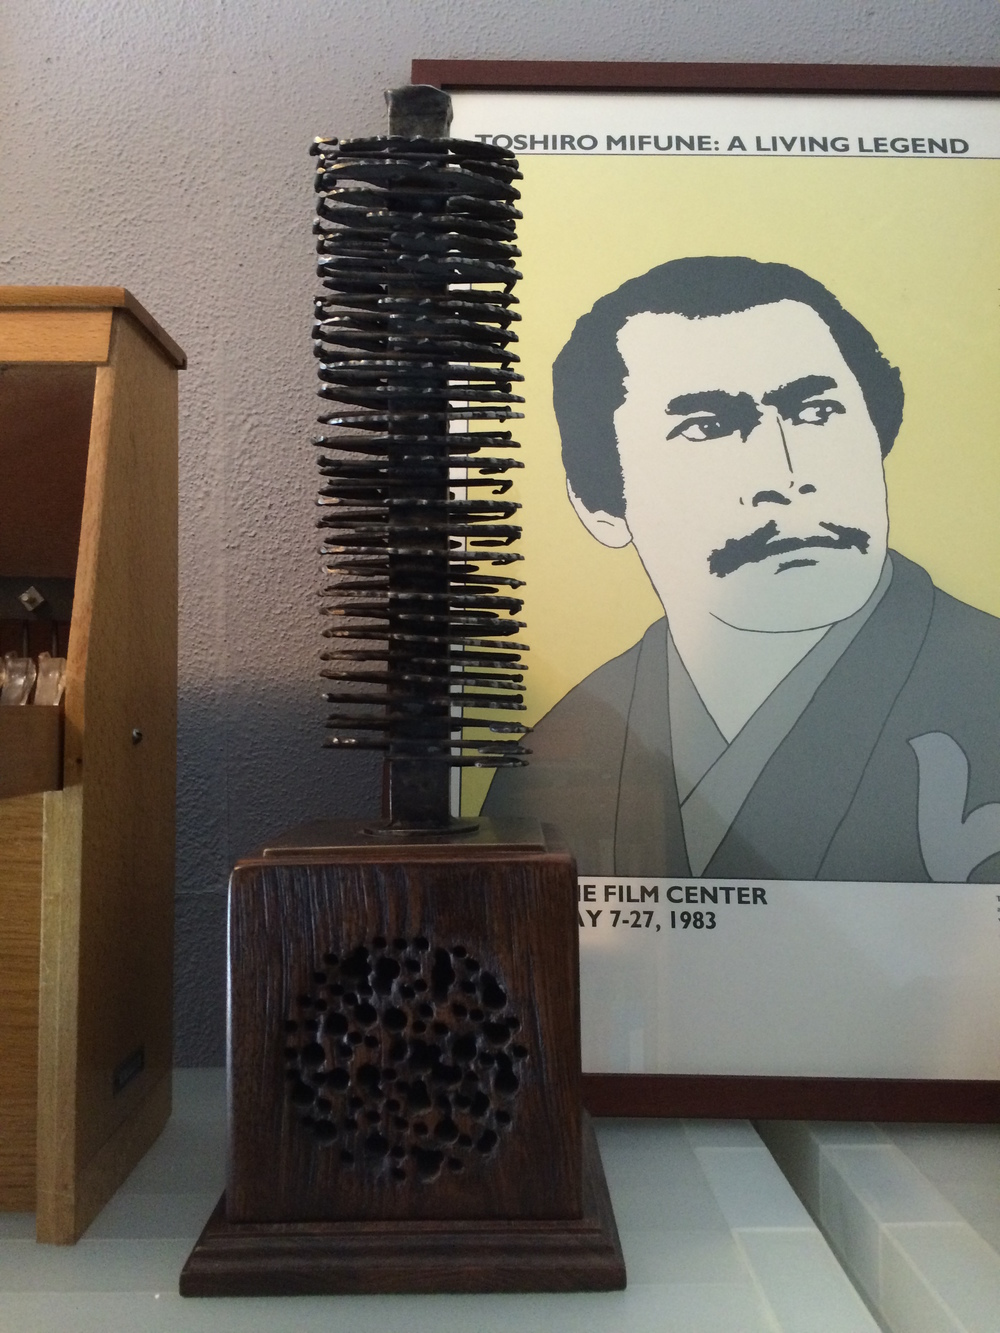 Gong Tree strategically placed next to Toshiro Mifune for good reason.